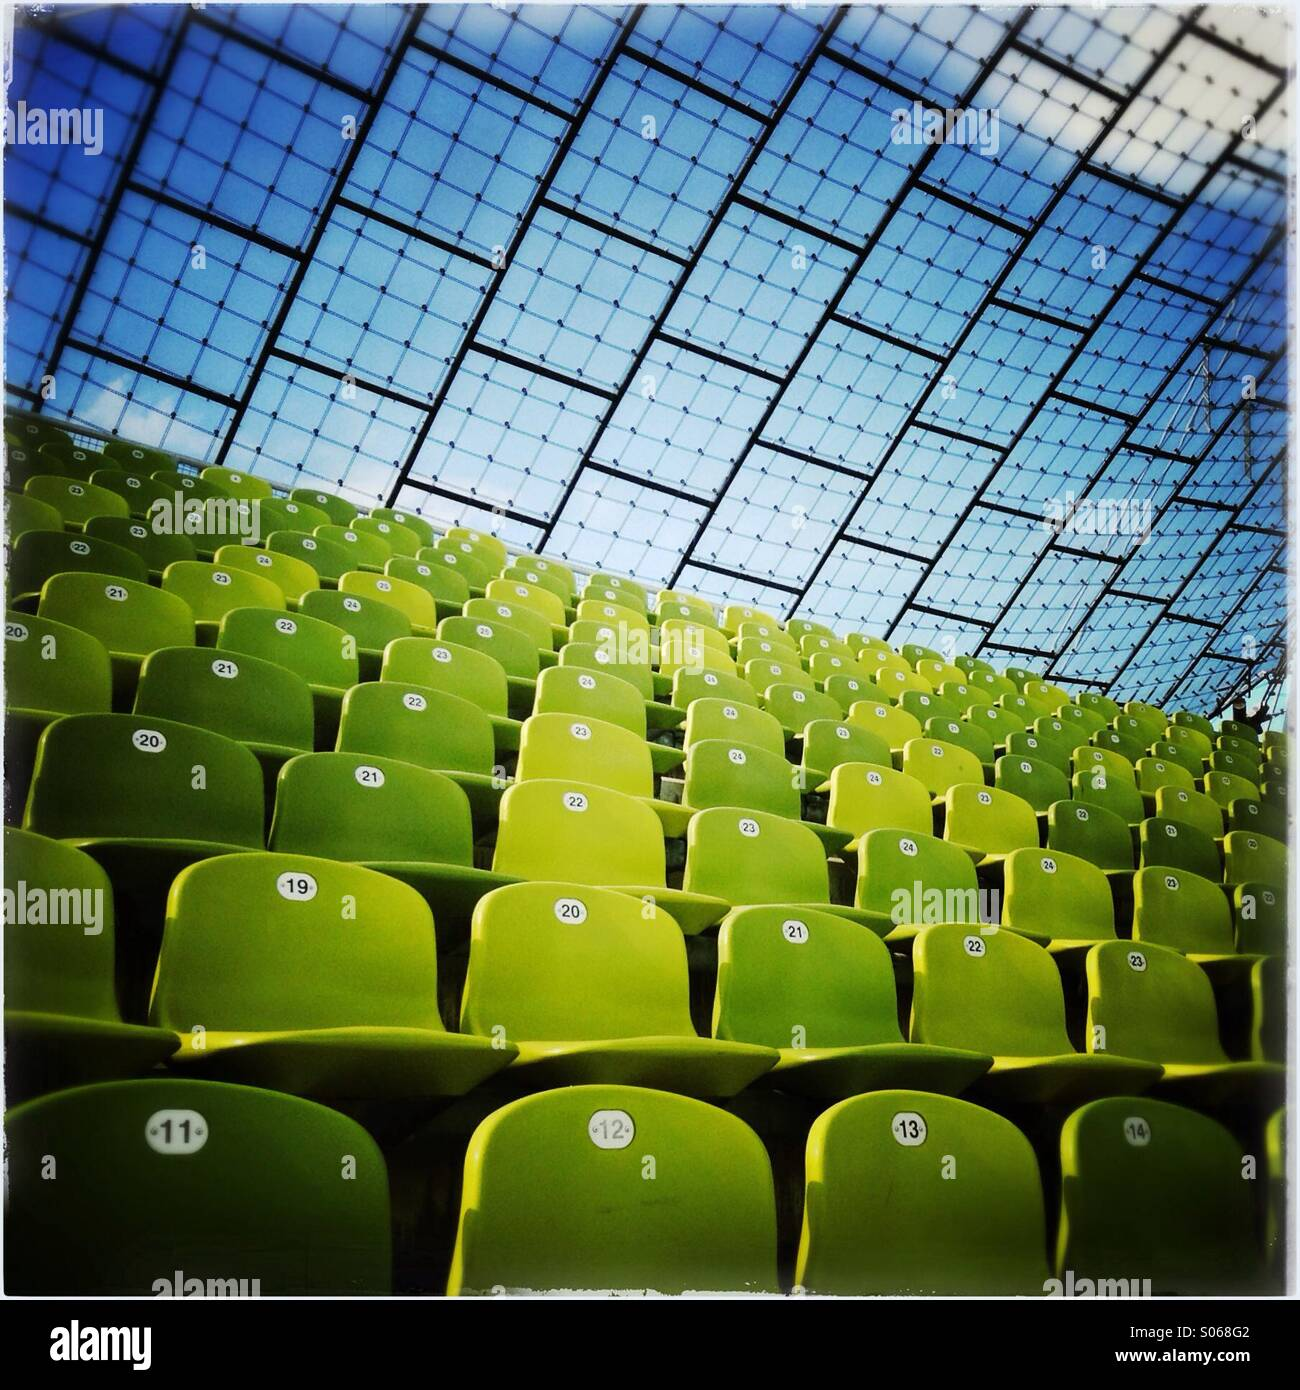 Row of seats in the Olympic Stadium in Munich, Bavaria, Germany, EuropeStock Photo